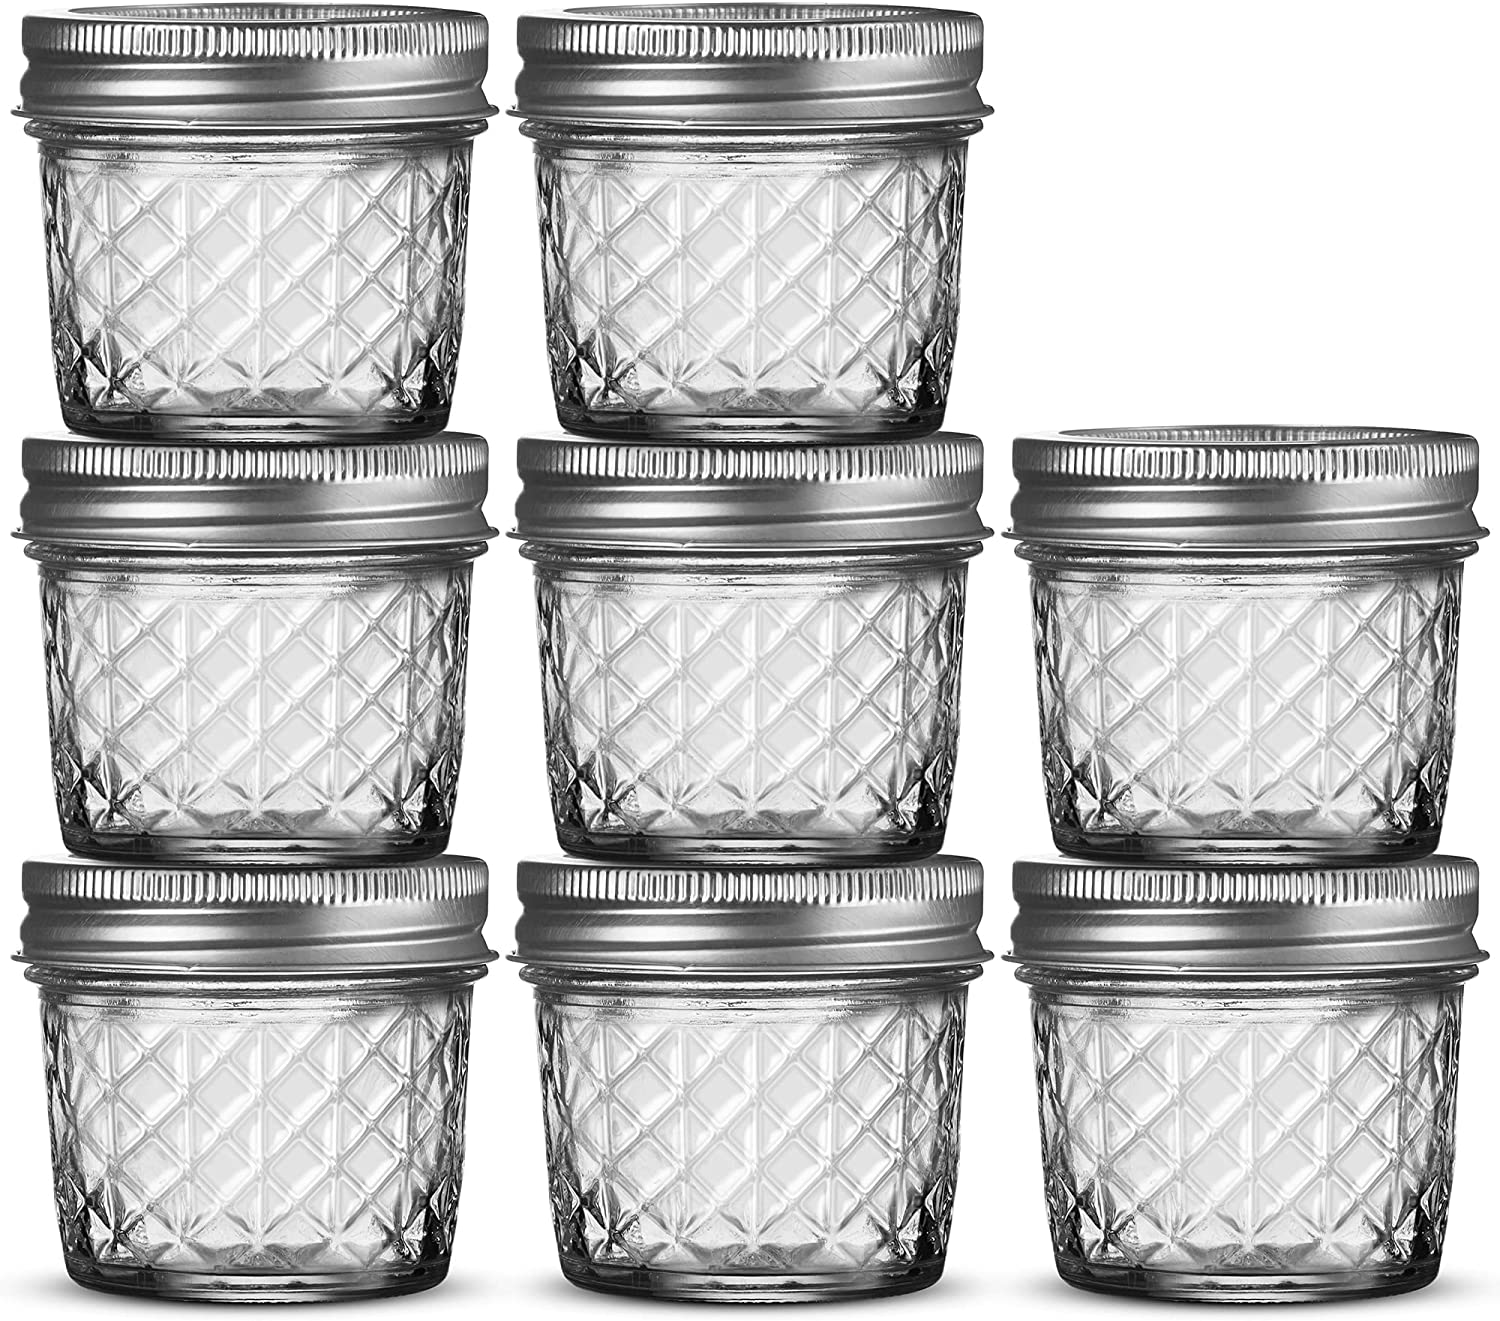 Ball Regular Mouth Mason Jars 4 oz [8 Pack] Ball Jelly Jars 4 oz with Lids For Canning, Fermenting, Conserving Syrups, Sauces, Jams, Baby Foods - Microwave/Freezer/Dishwasher Safe + SEWANTA Jar Opener